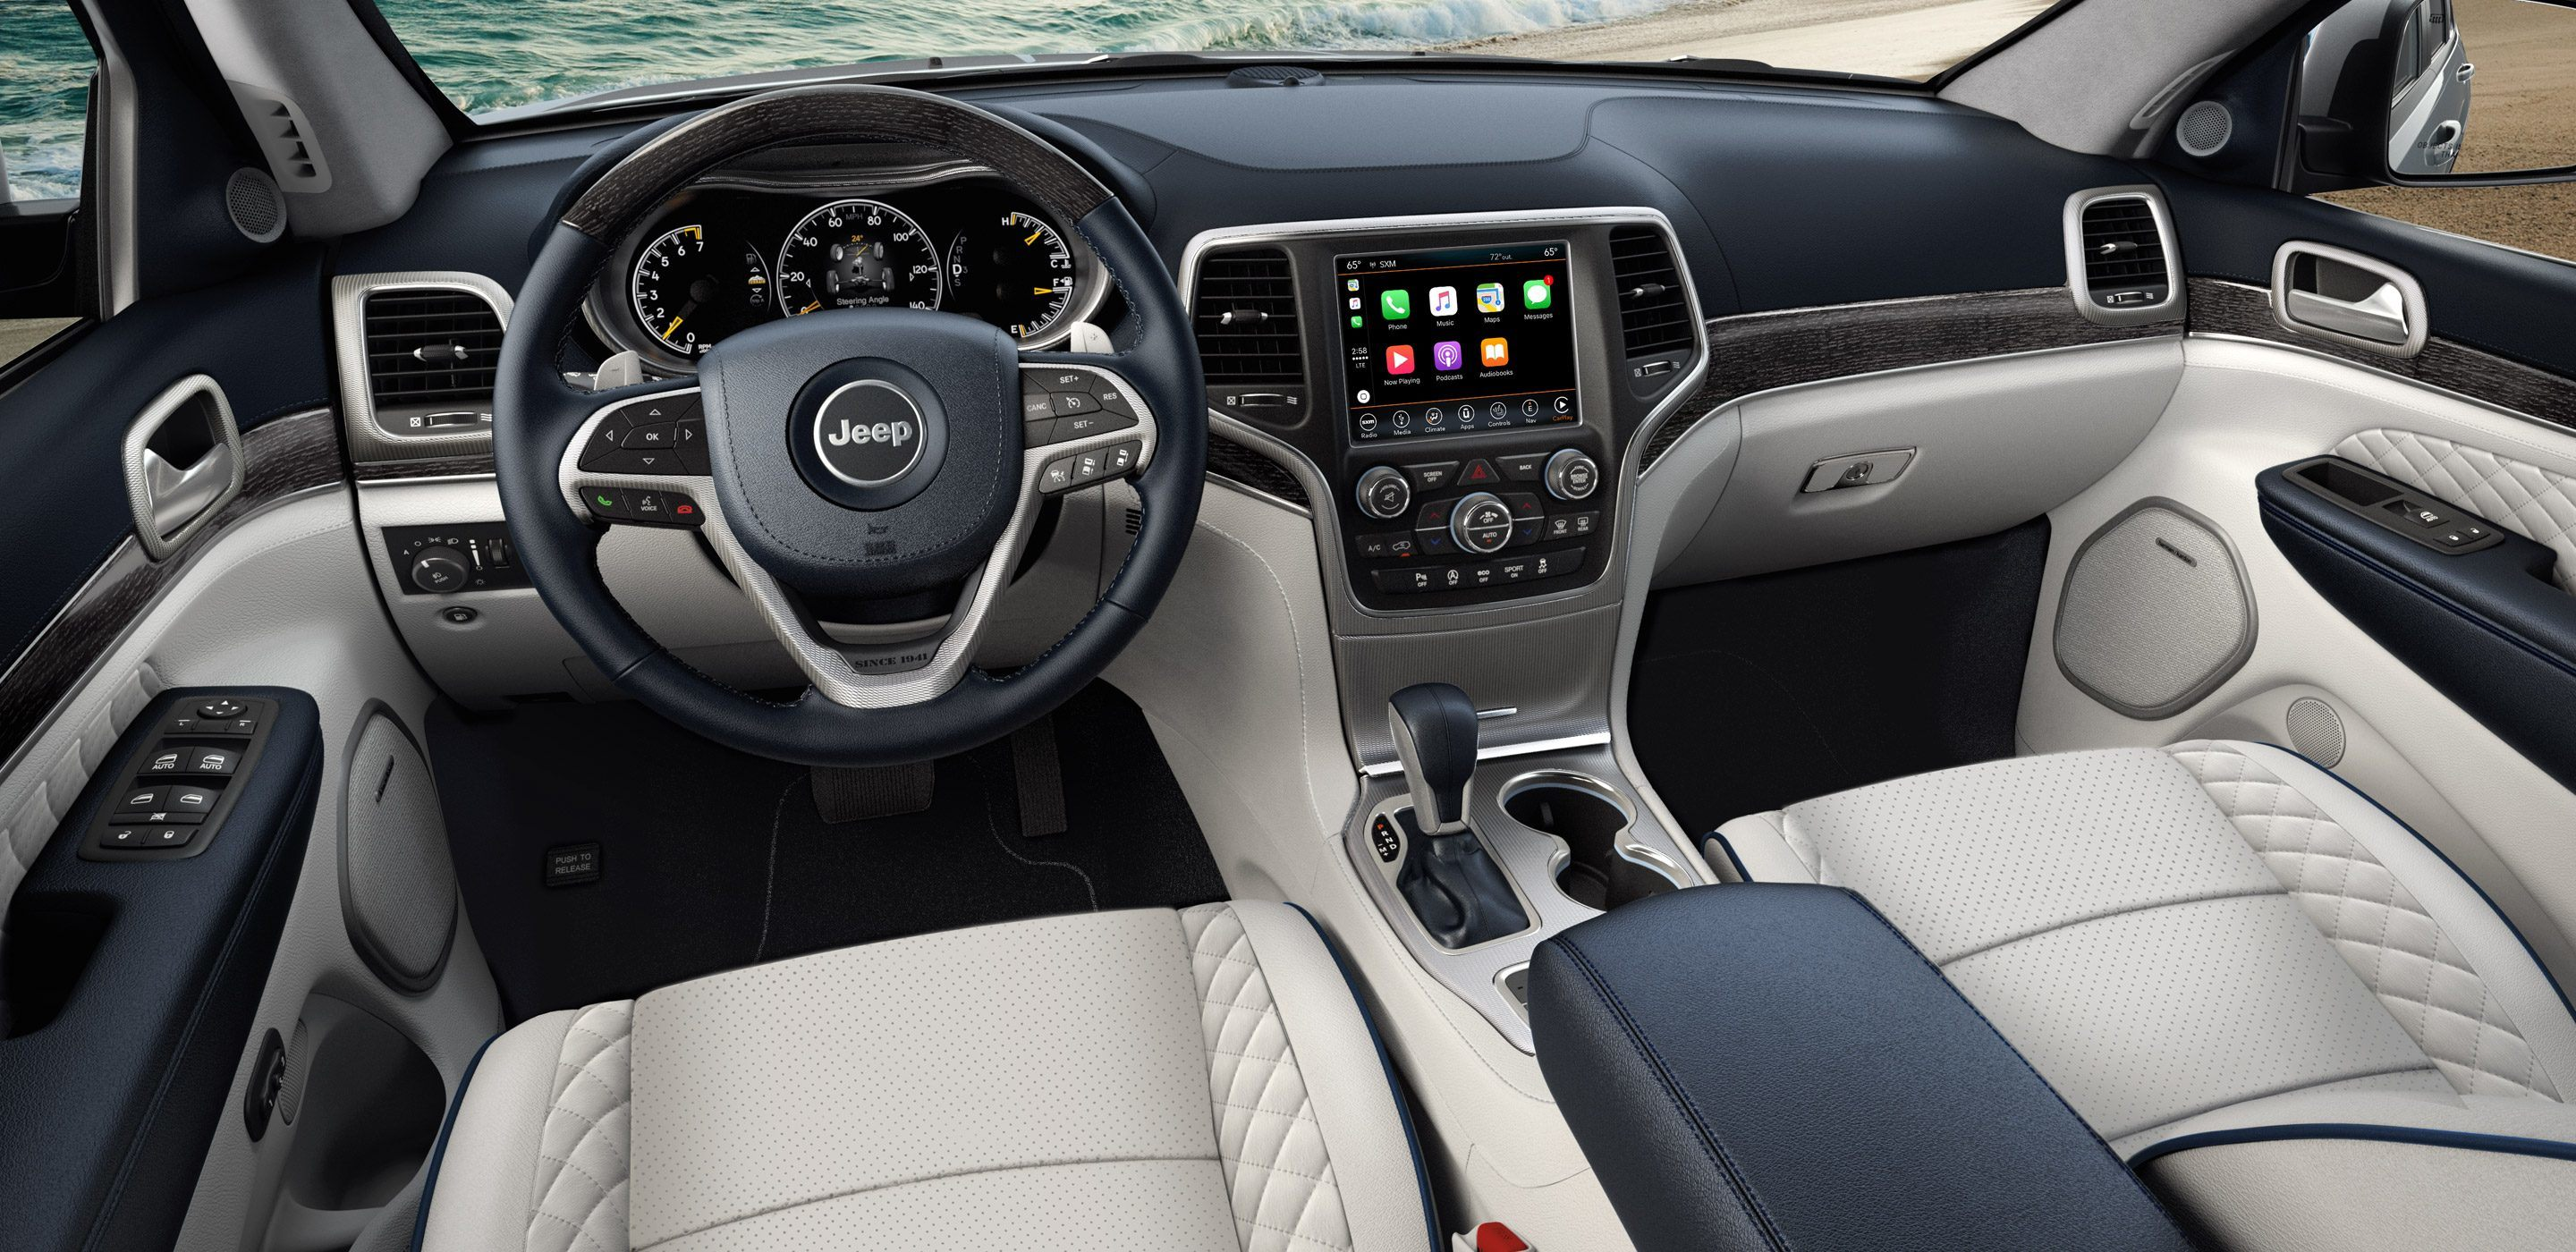 2018-Jeep-Grand-Cherokee-Gallery-Interior-Summit-Signature-Interior-Package.jpg.image.2880